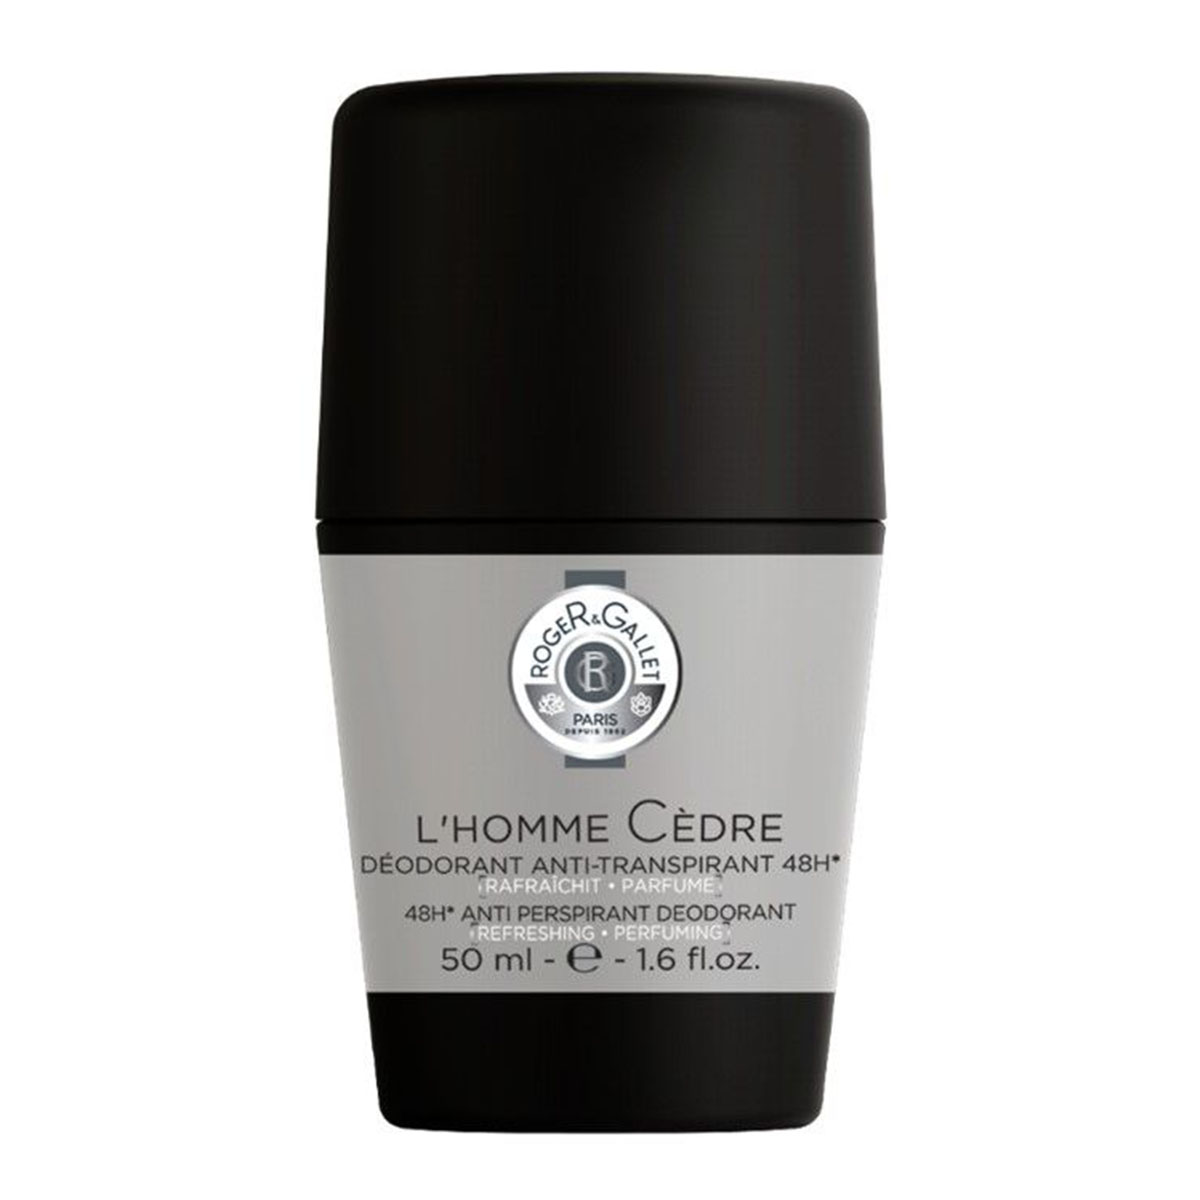 Déodorant Roll-on l'Homme Cèdre Roger Gallet - 50ml